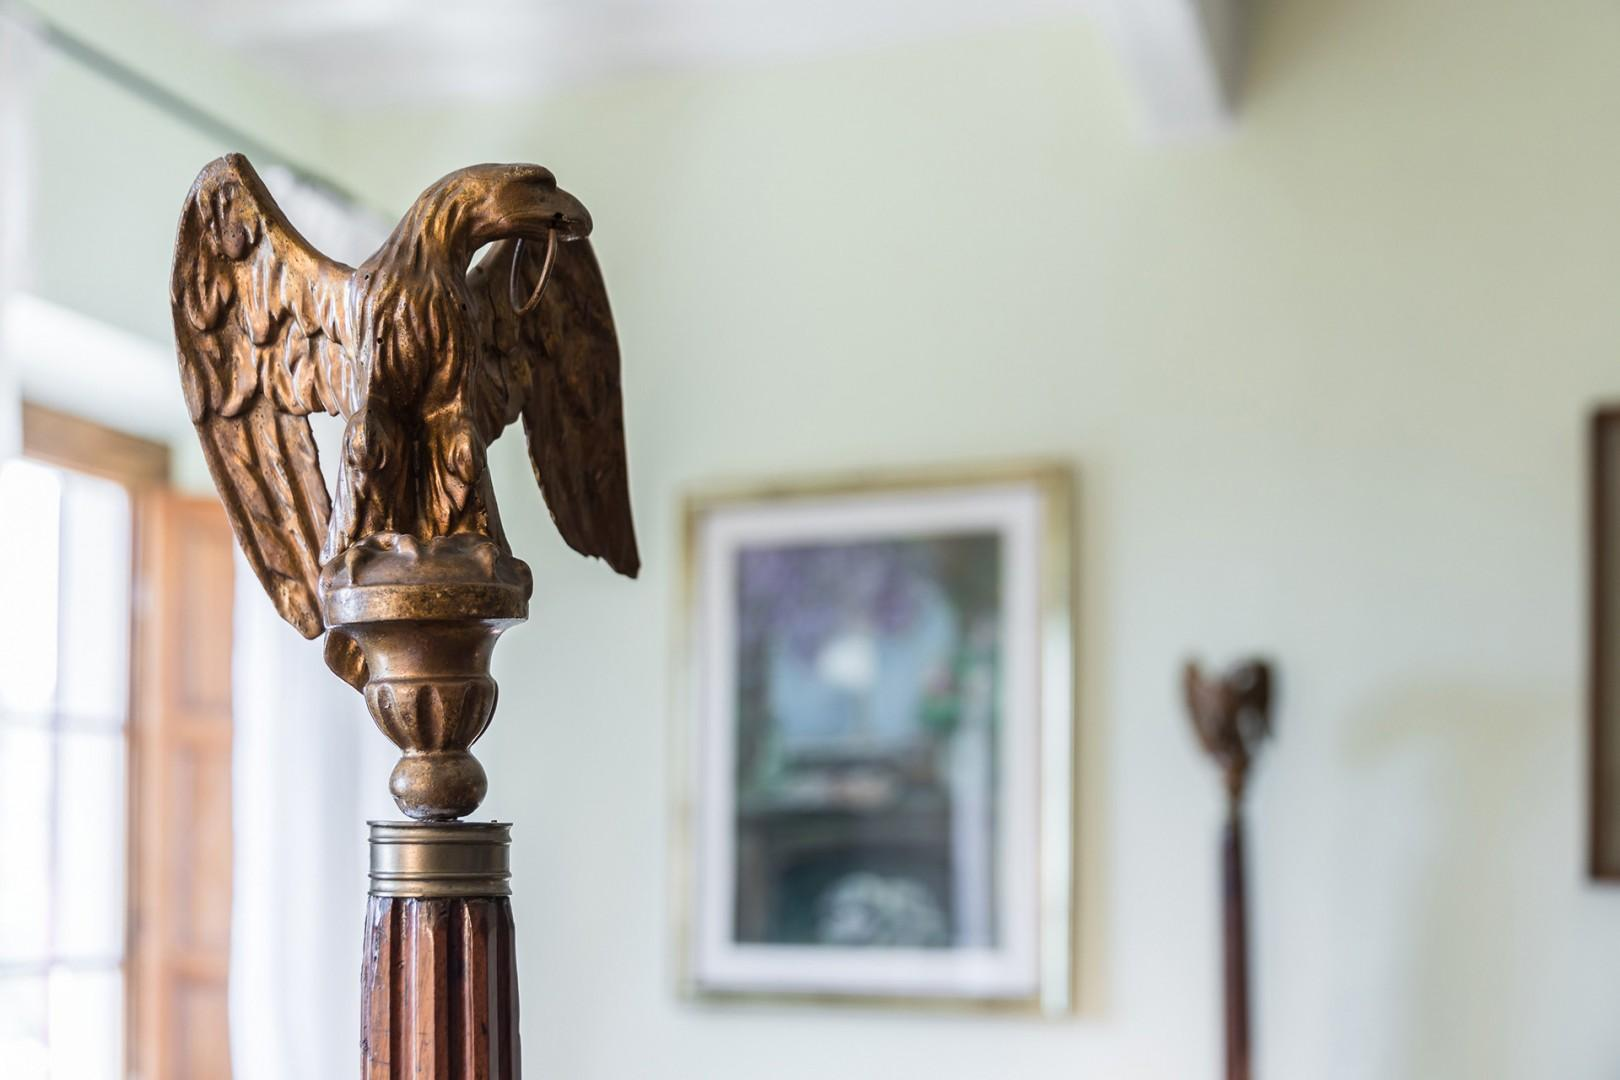 The original bedstead. Each column is topped by an eagle.